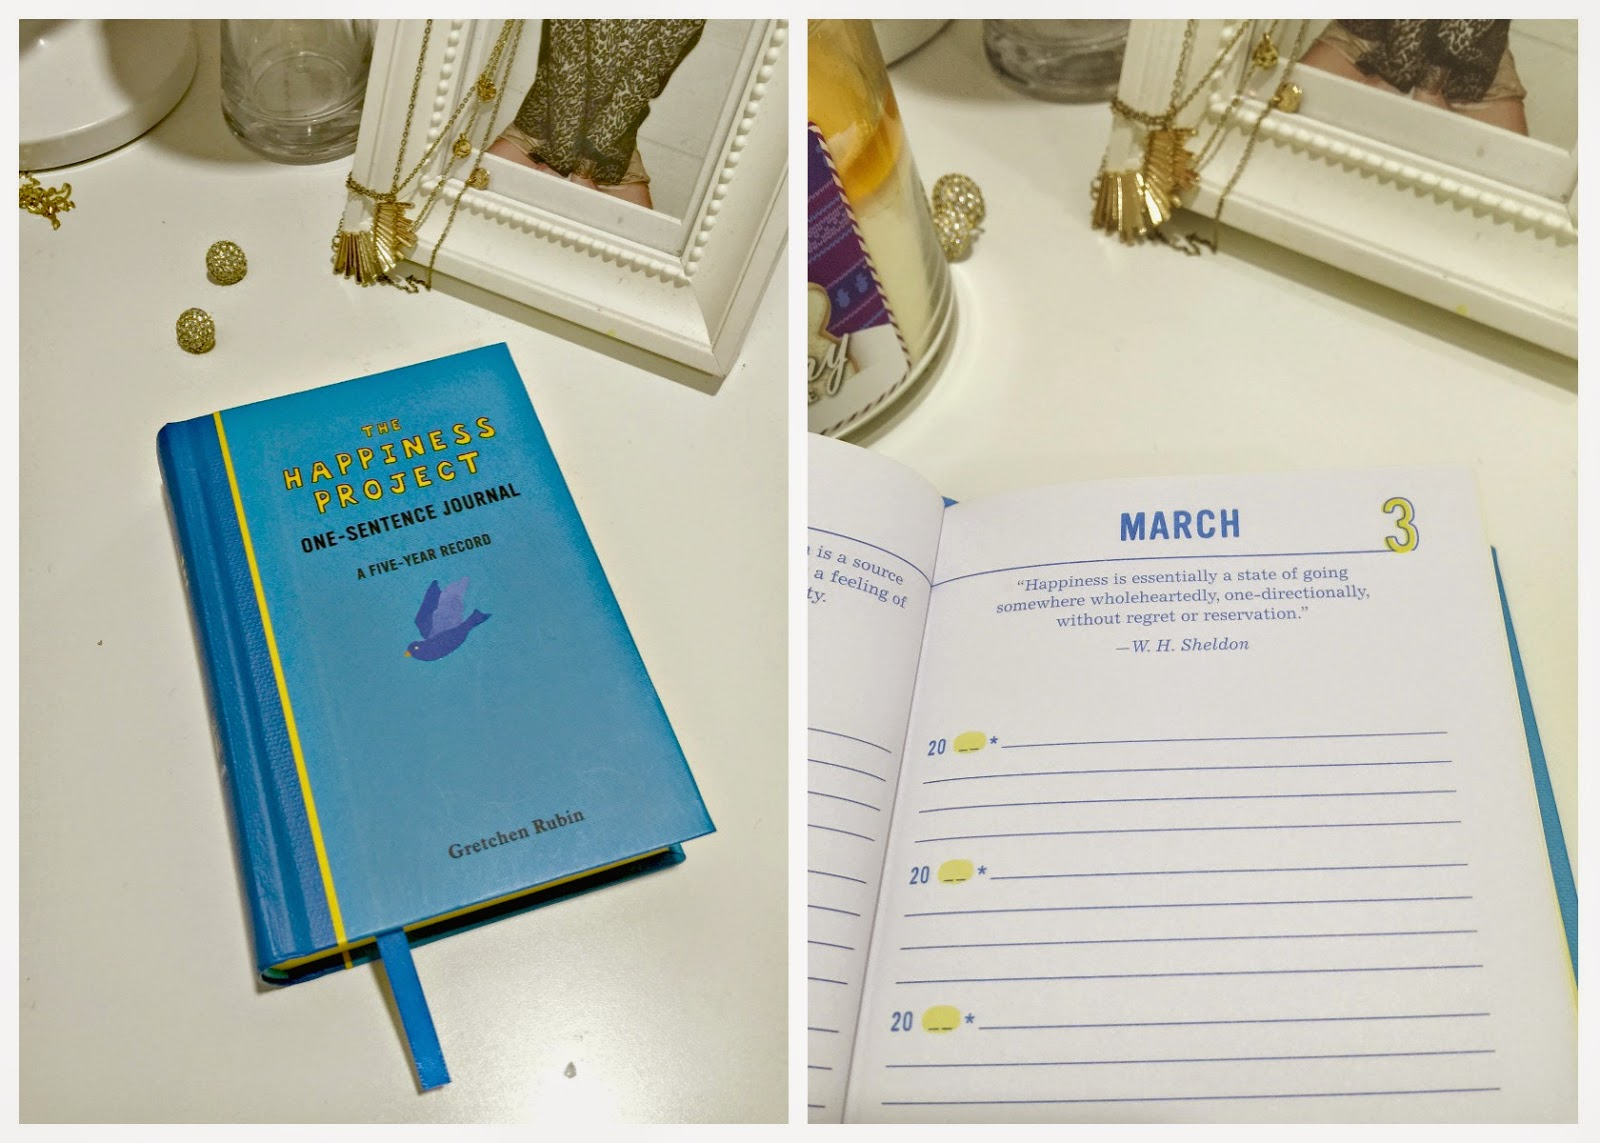 The Happiness Project: One-Sentence Journal